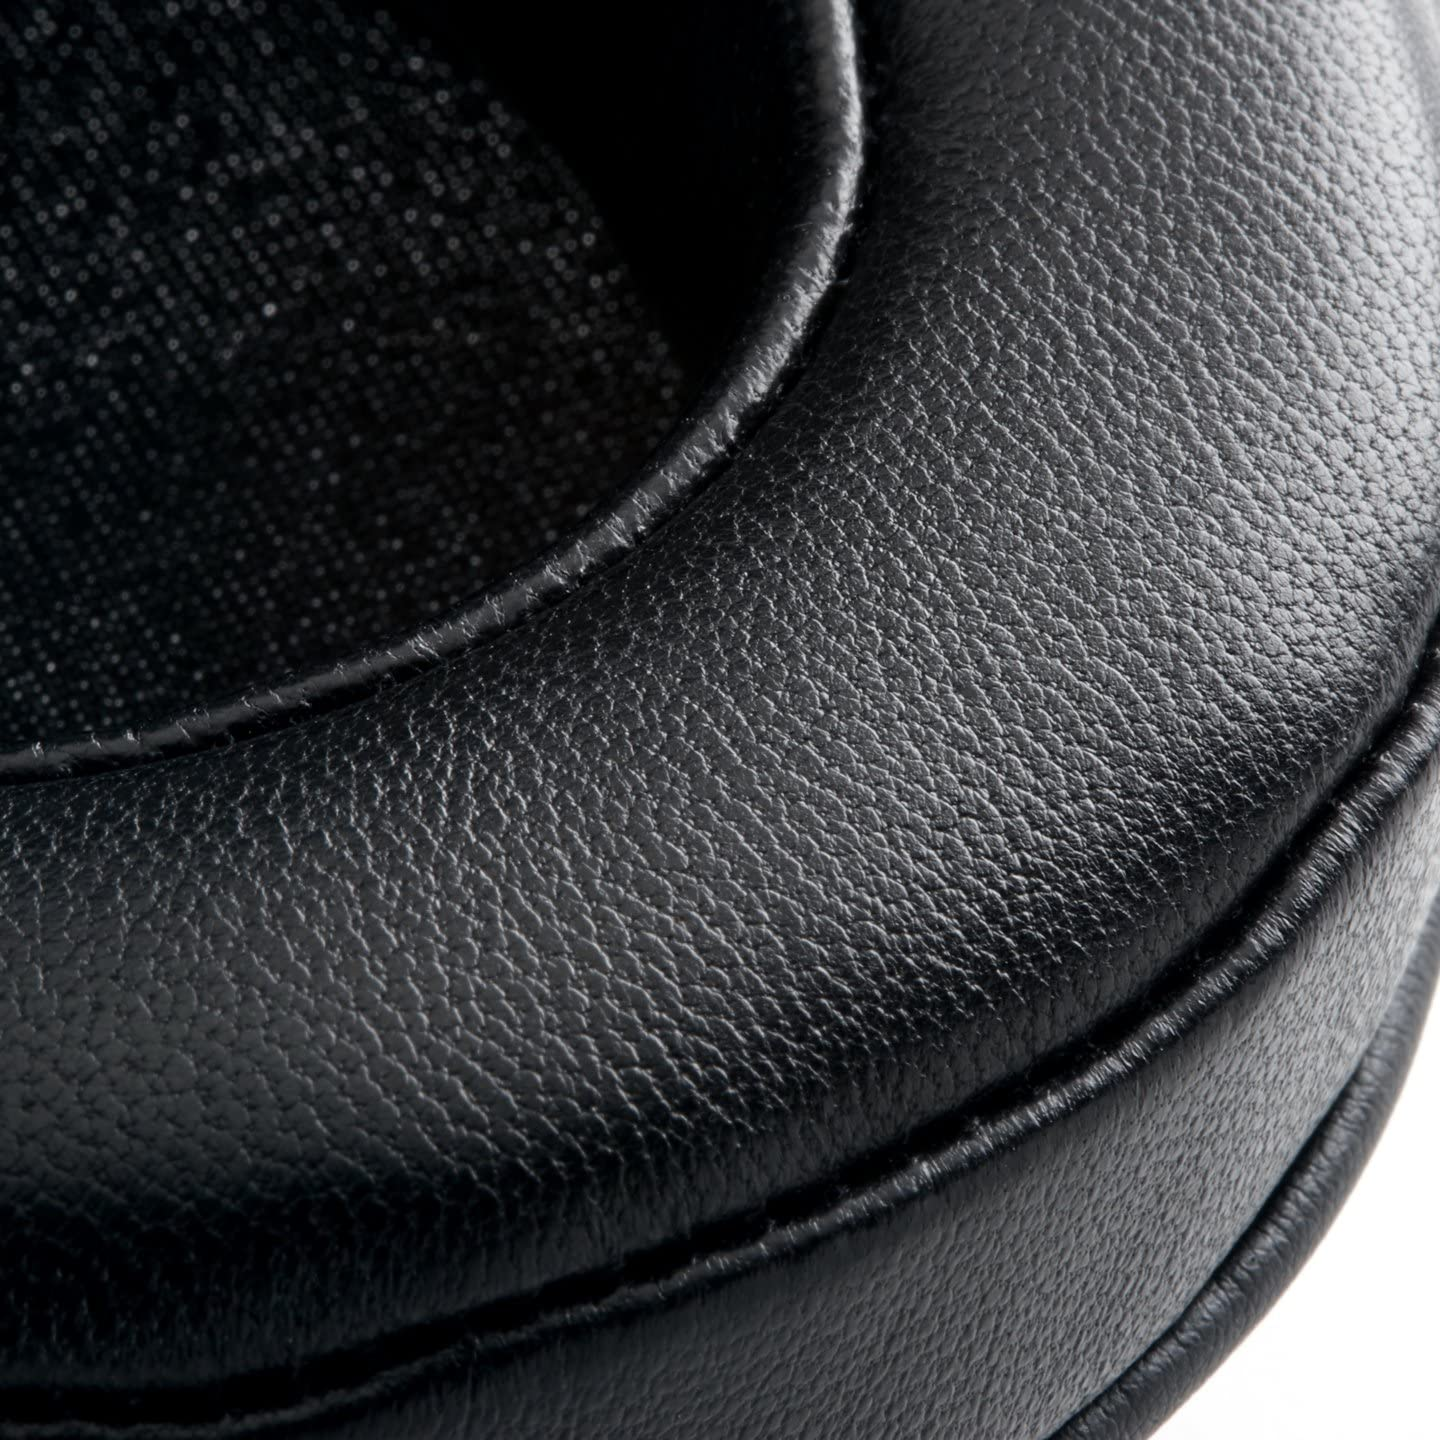 K702 Dekoni Audio Memory Foam Replacement Ear Pads Compatible with AKG K701 Elite Hybrid K7XX and More